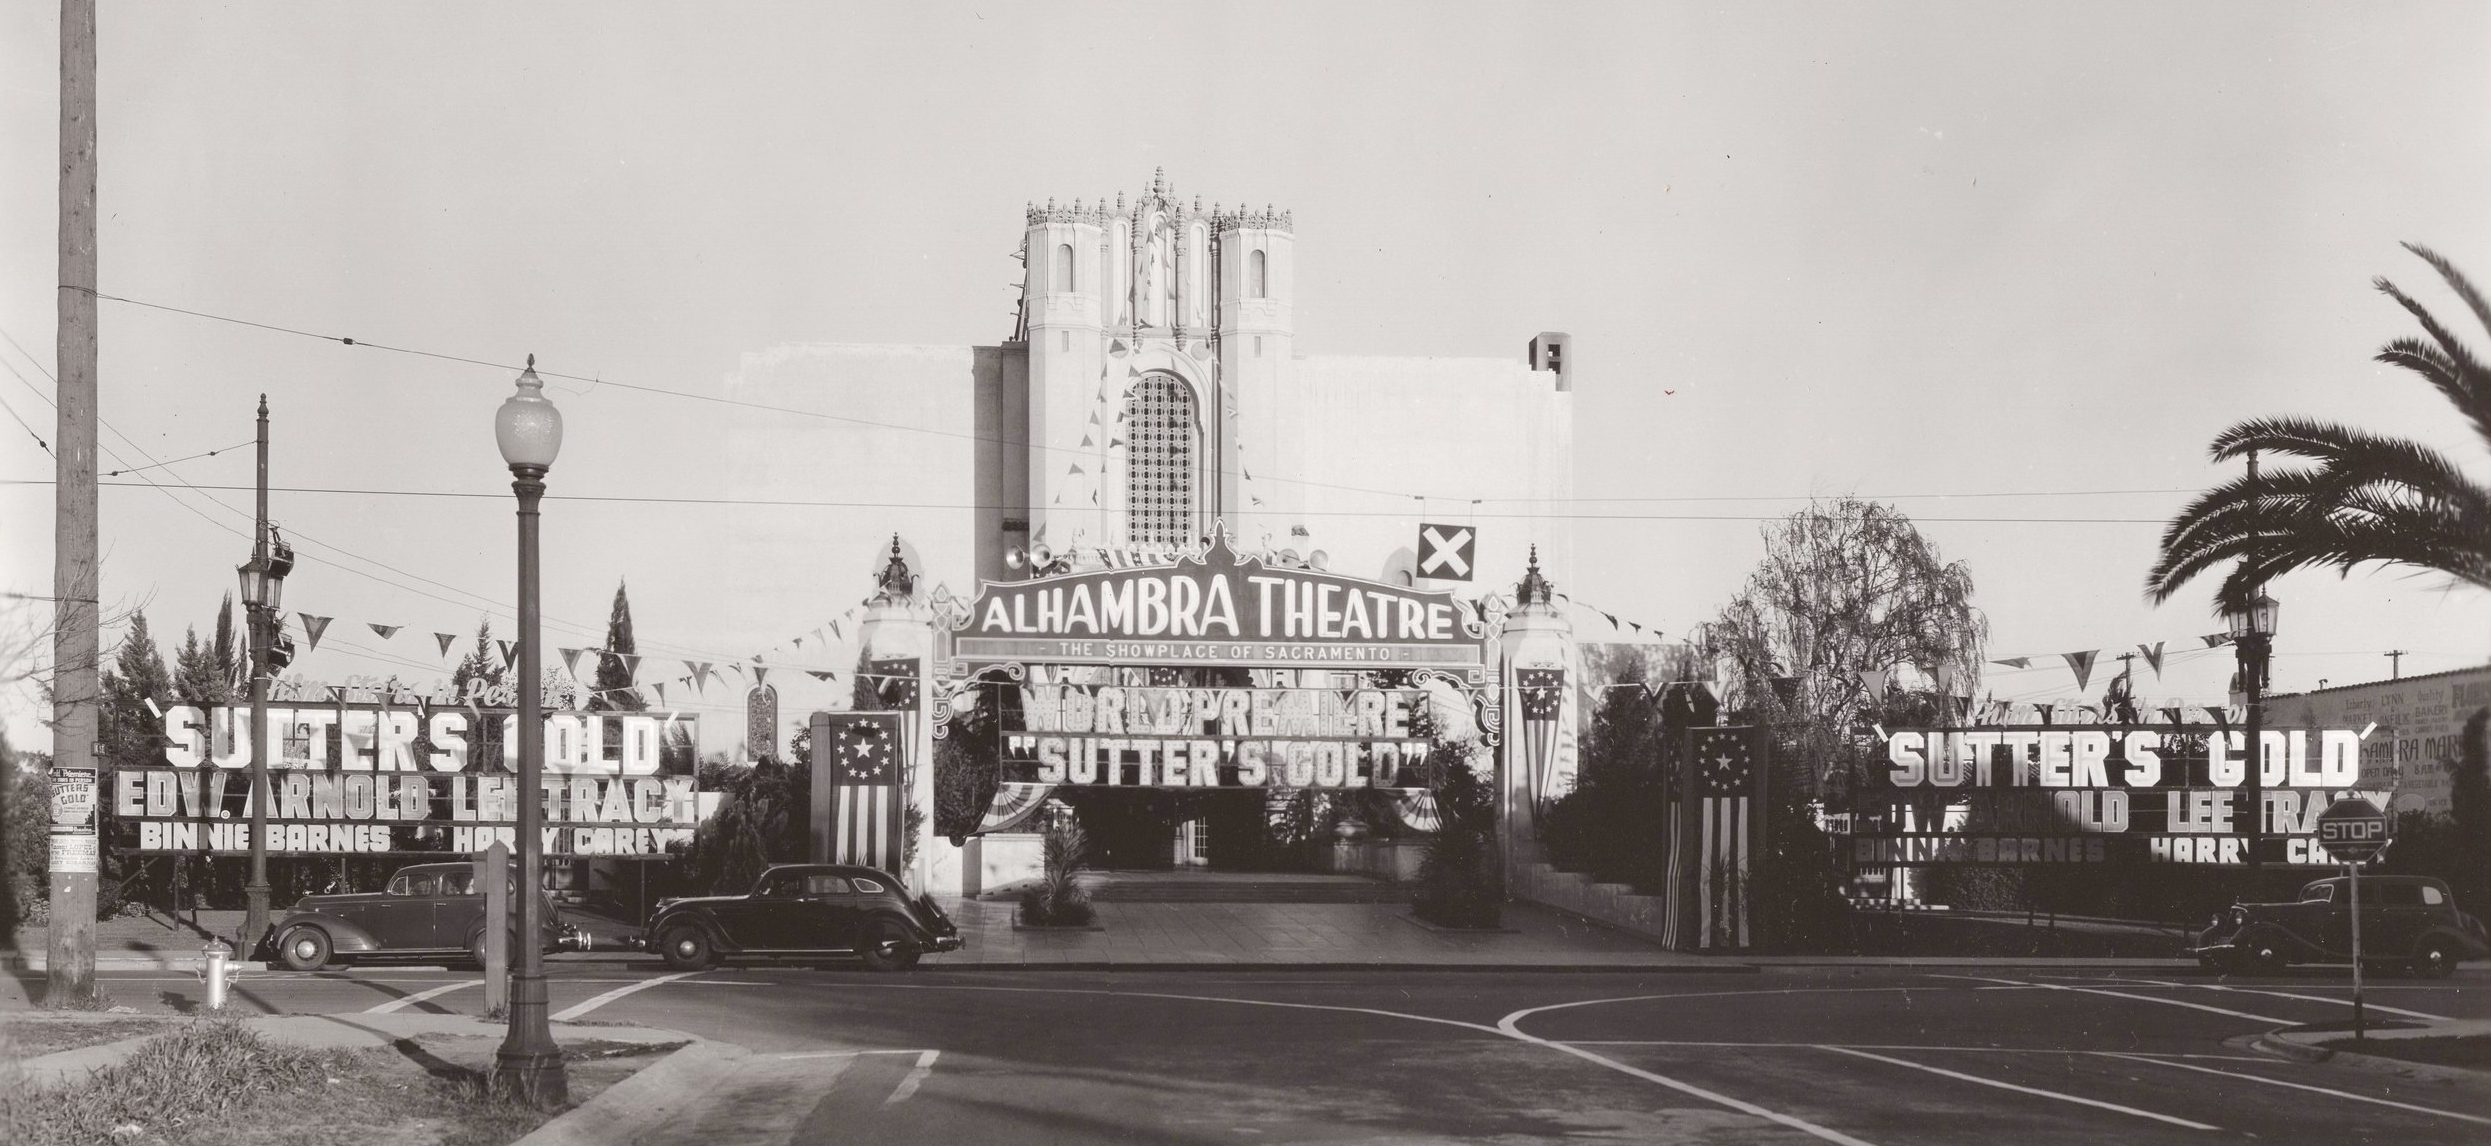 Alhambra Theatre 1936- Nicholas Cadena Moore Collection